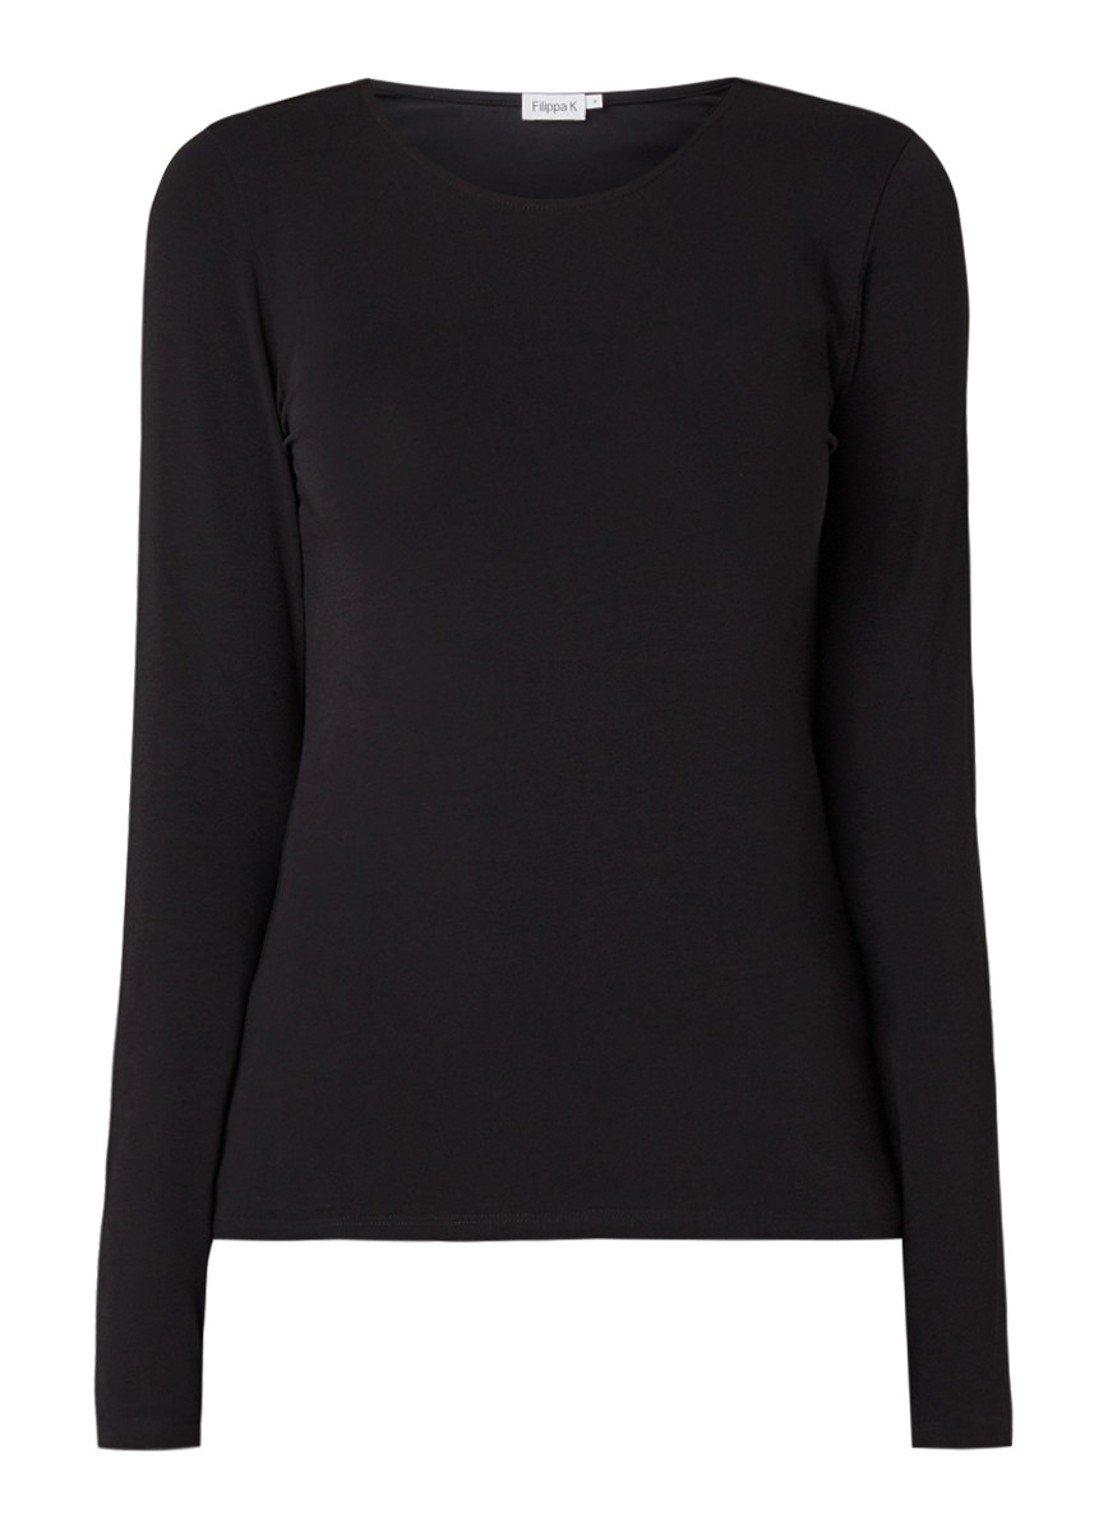 Slim fit longsleeve with round neck